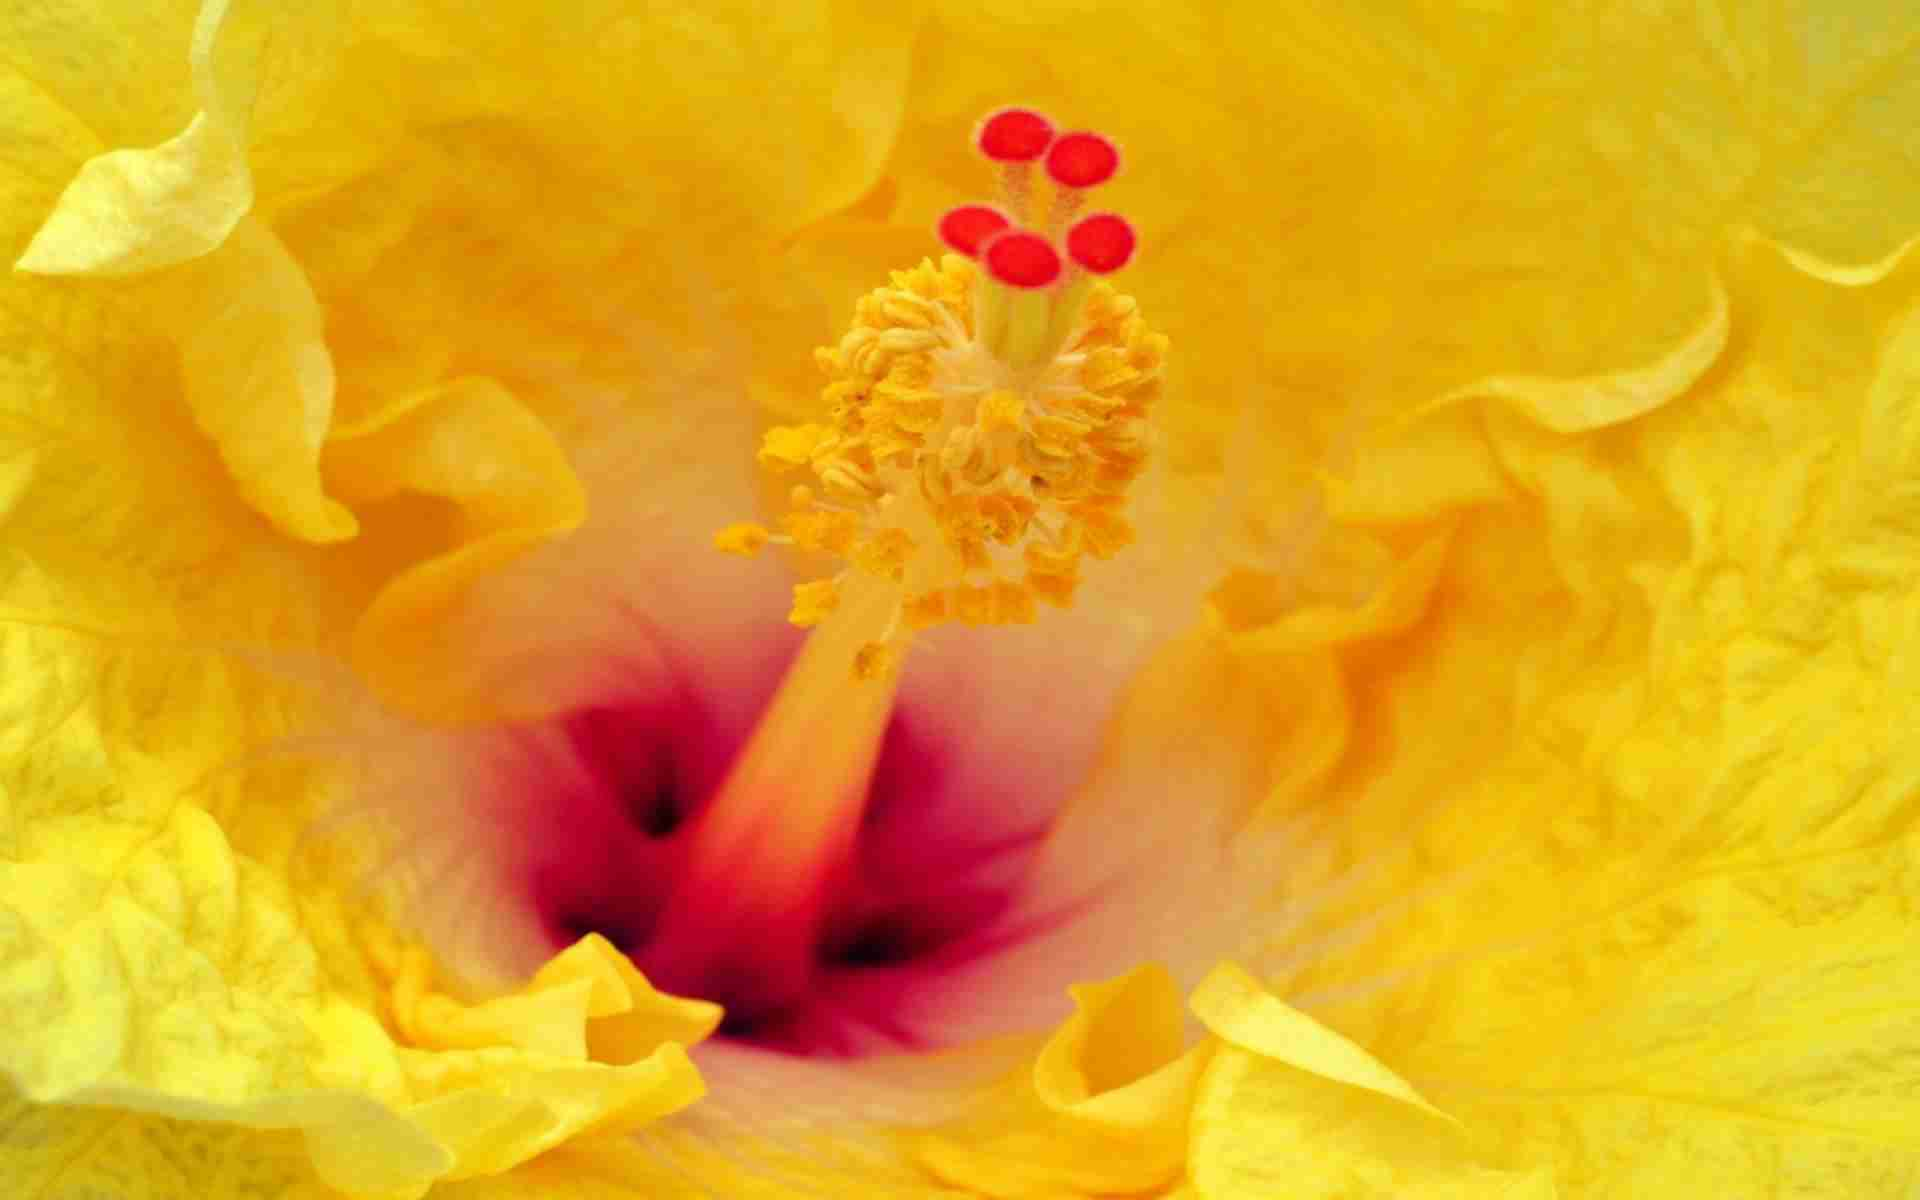 DOWNLOAD: flower-stamens-petals-hd free background 2560 x 1600